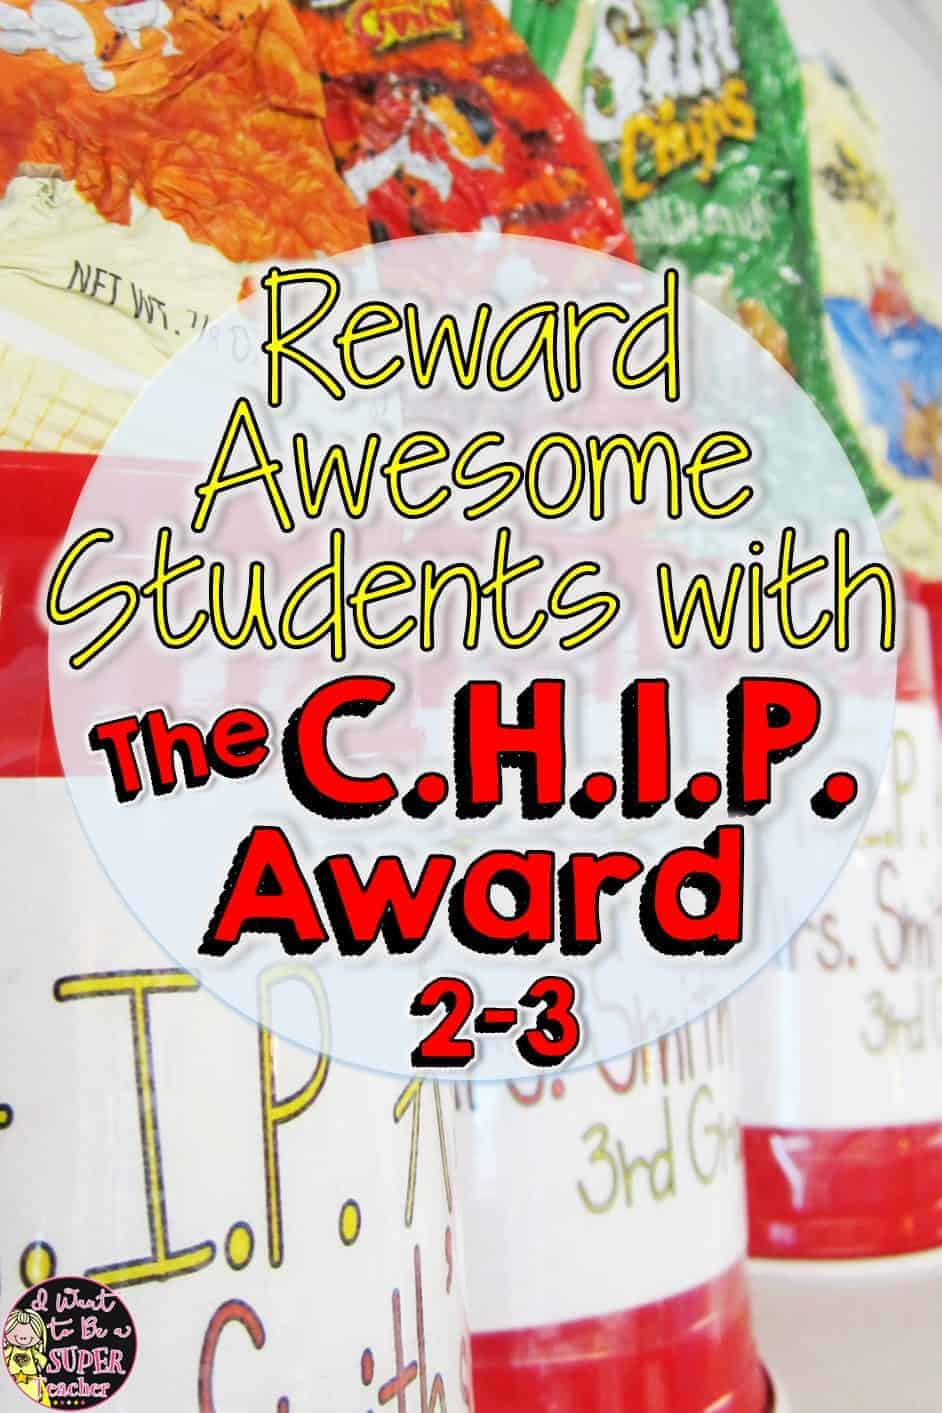 Fun and creative DIY rewards teachers can use for kids!! Step by step instructions for making C.H.I.P. (Caring Helpful Independent Polite) Trophies. Great for elementary school students in 2nd and 3rd grade. Click for pictures and instructions. #education #classroommanagement #diy